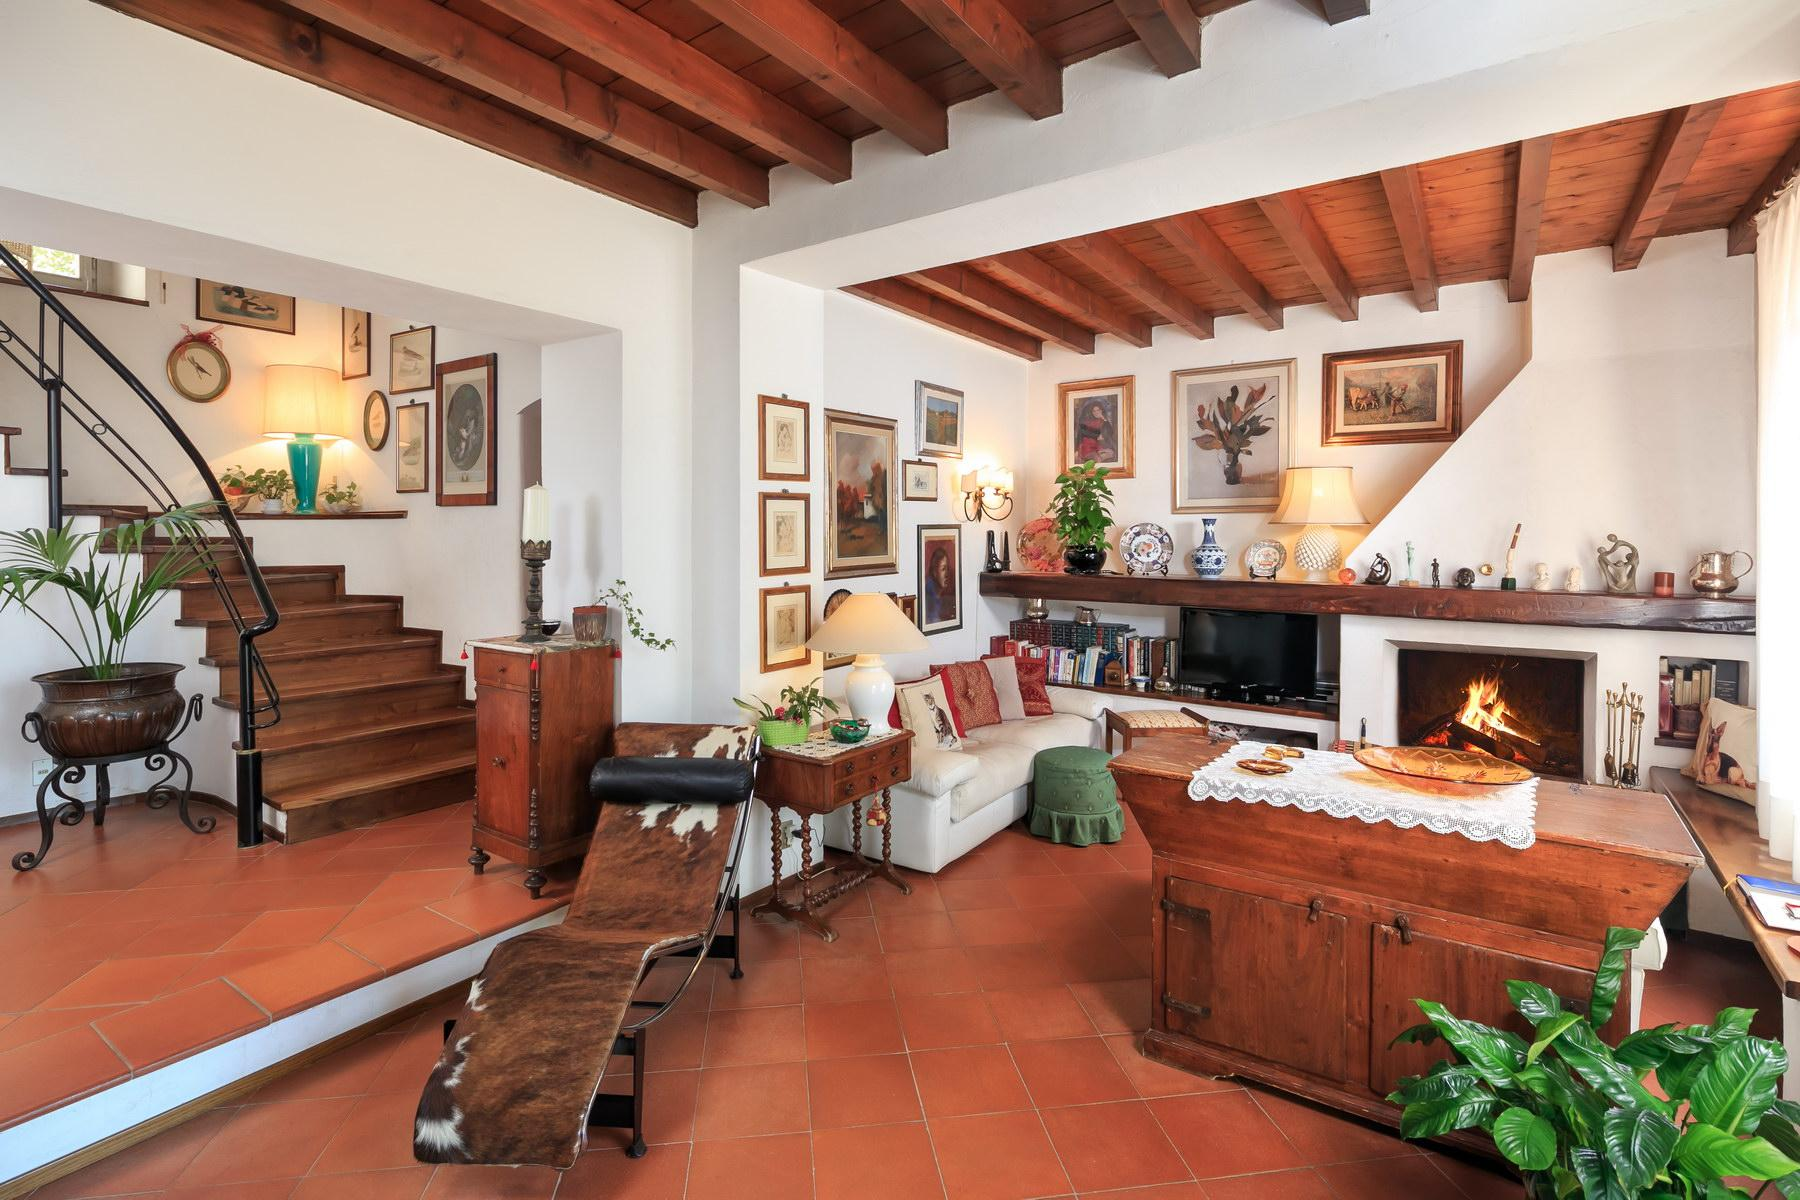 Wonderful farmhouse on the Tuscan hills - 4